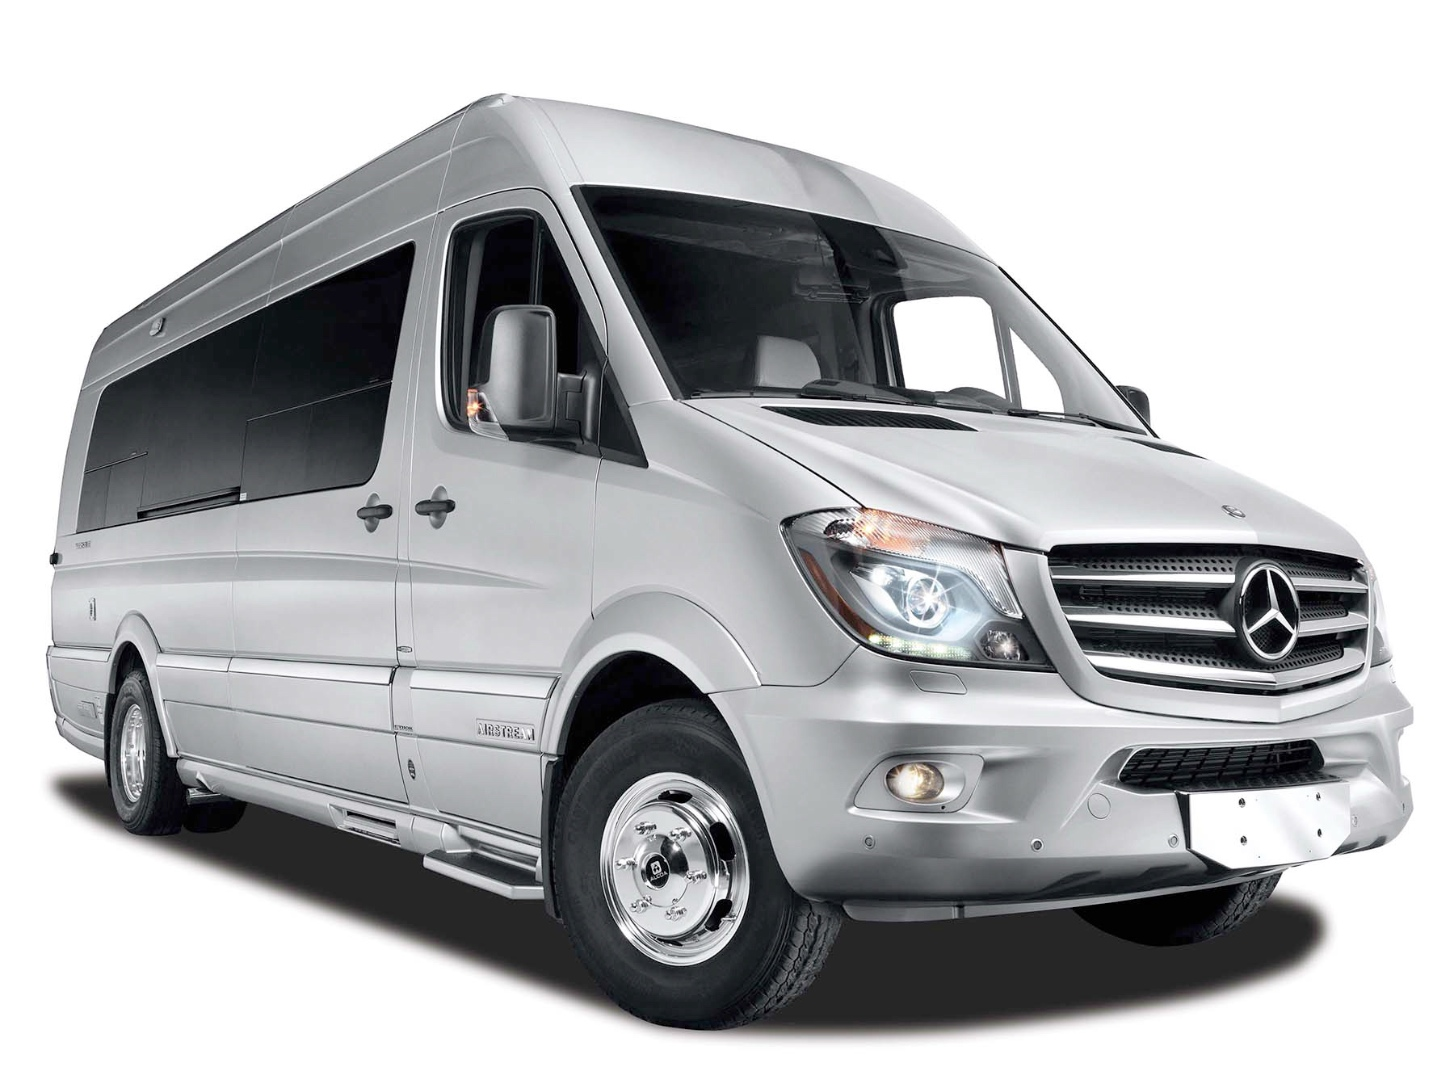 New airstream autobahn is a mercedes benz sprinter luxury for Mercedes benz sprinter luxury